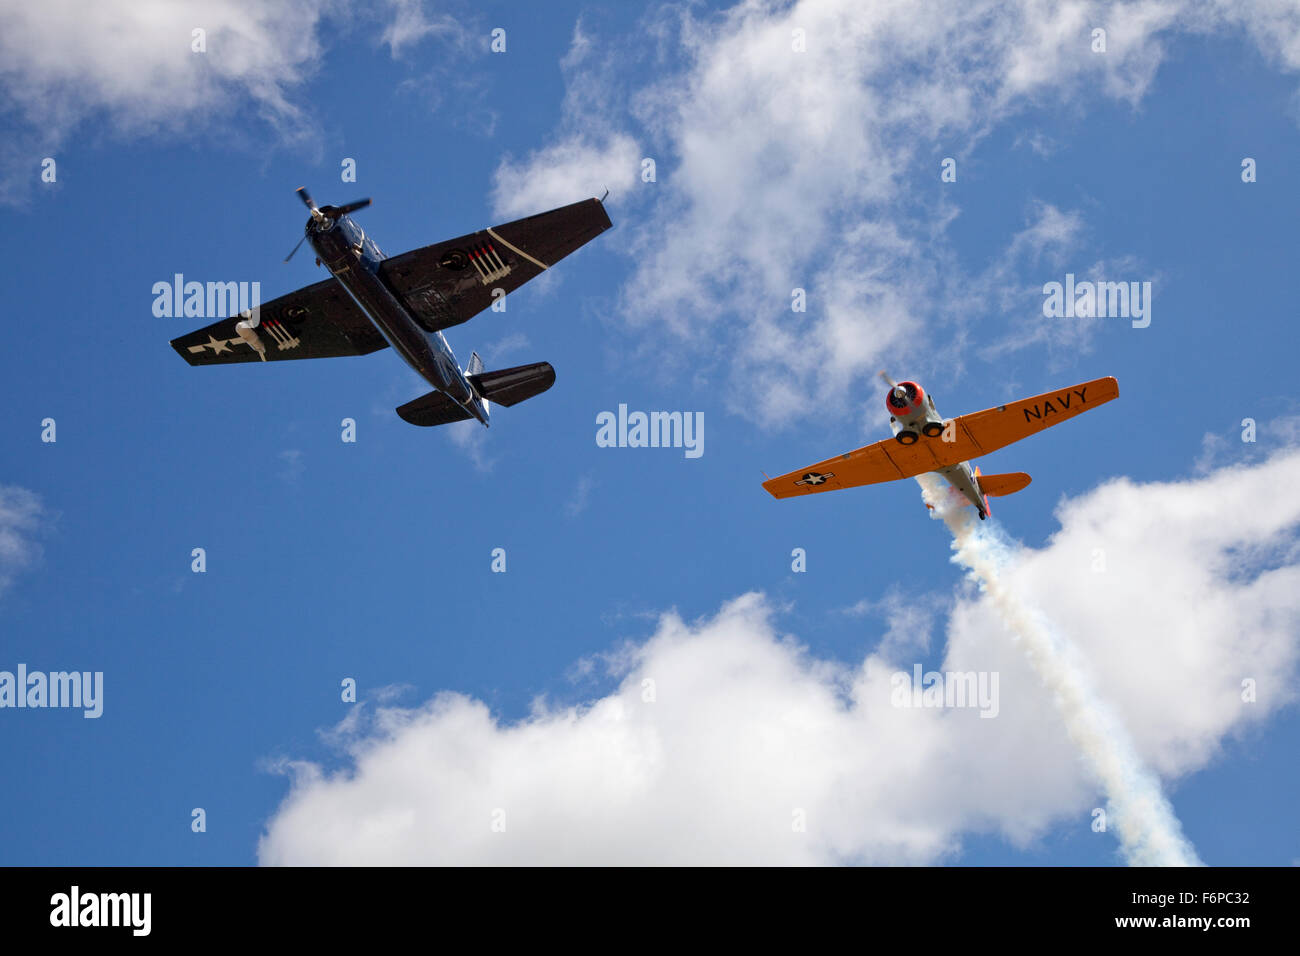 Could be WWII Grumman TBF Avenger & North American T-6 Texan airplanes. Gathering of Airplanes, Battle Lake - Stock Image